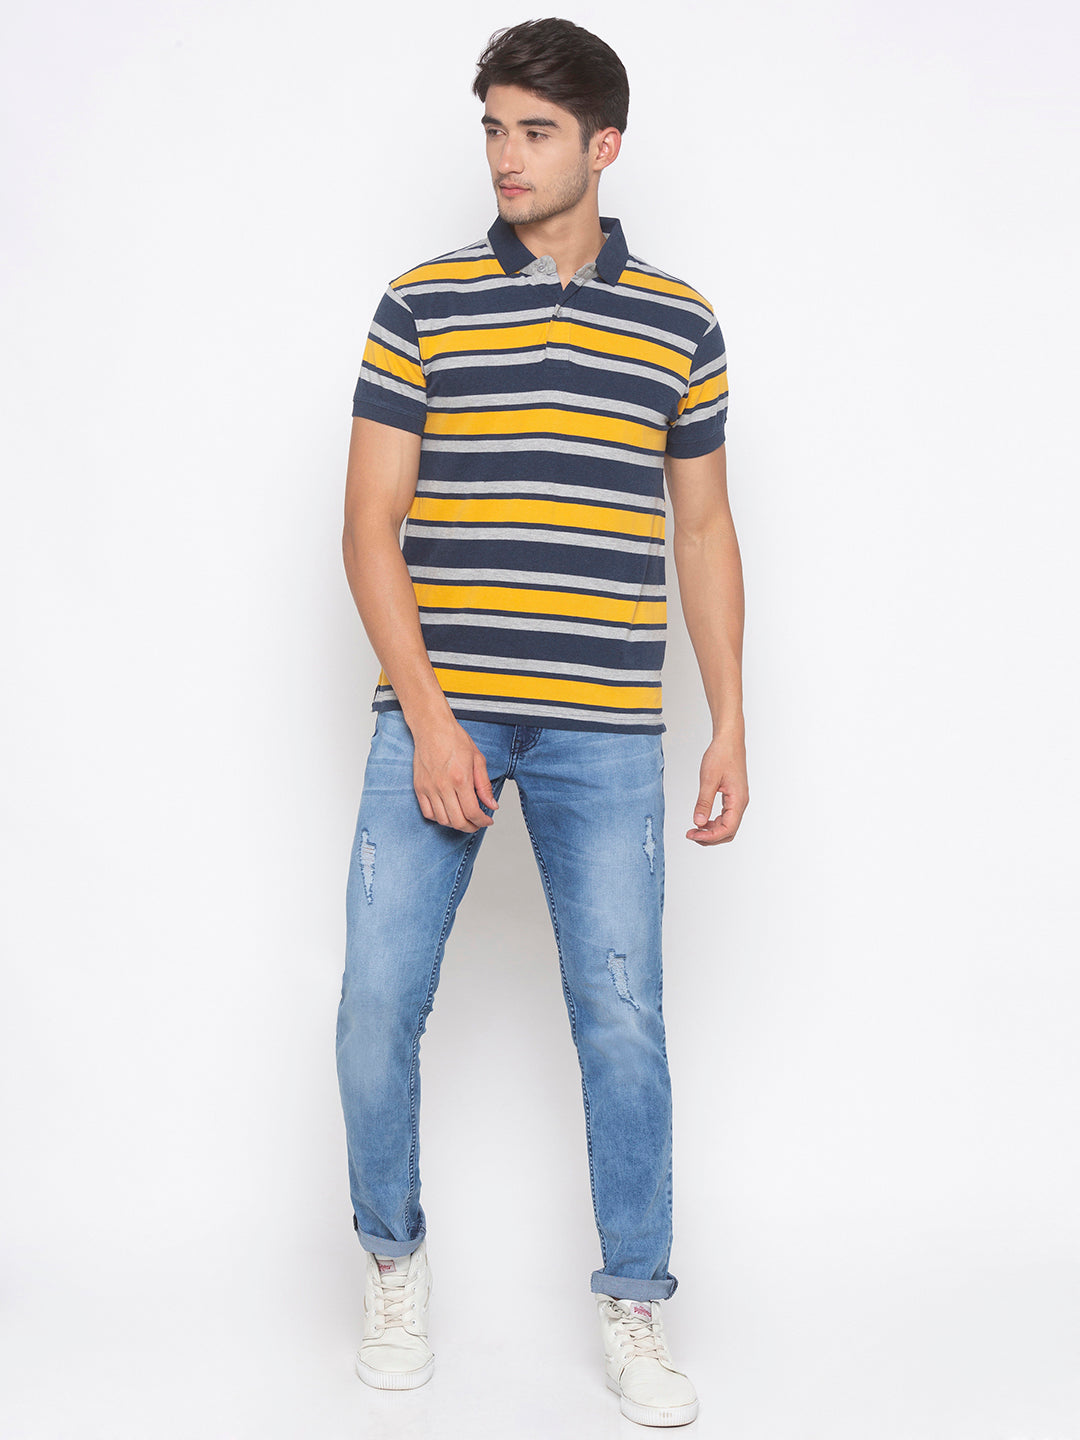 Globus Mustard & Navy Blue Striped T-Shirt-4